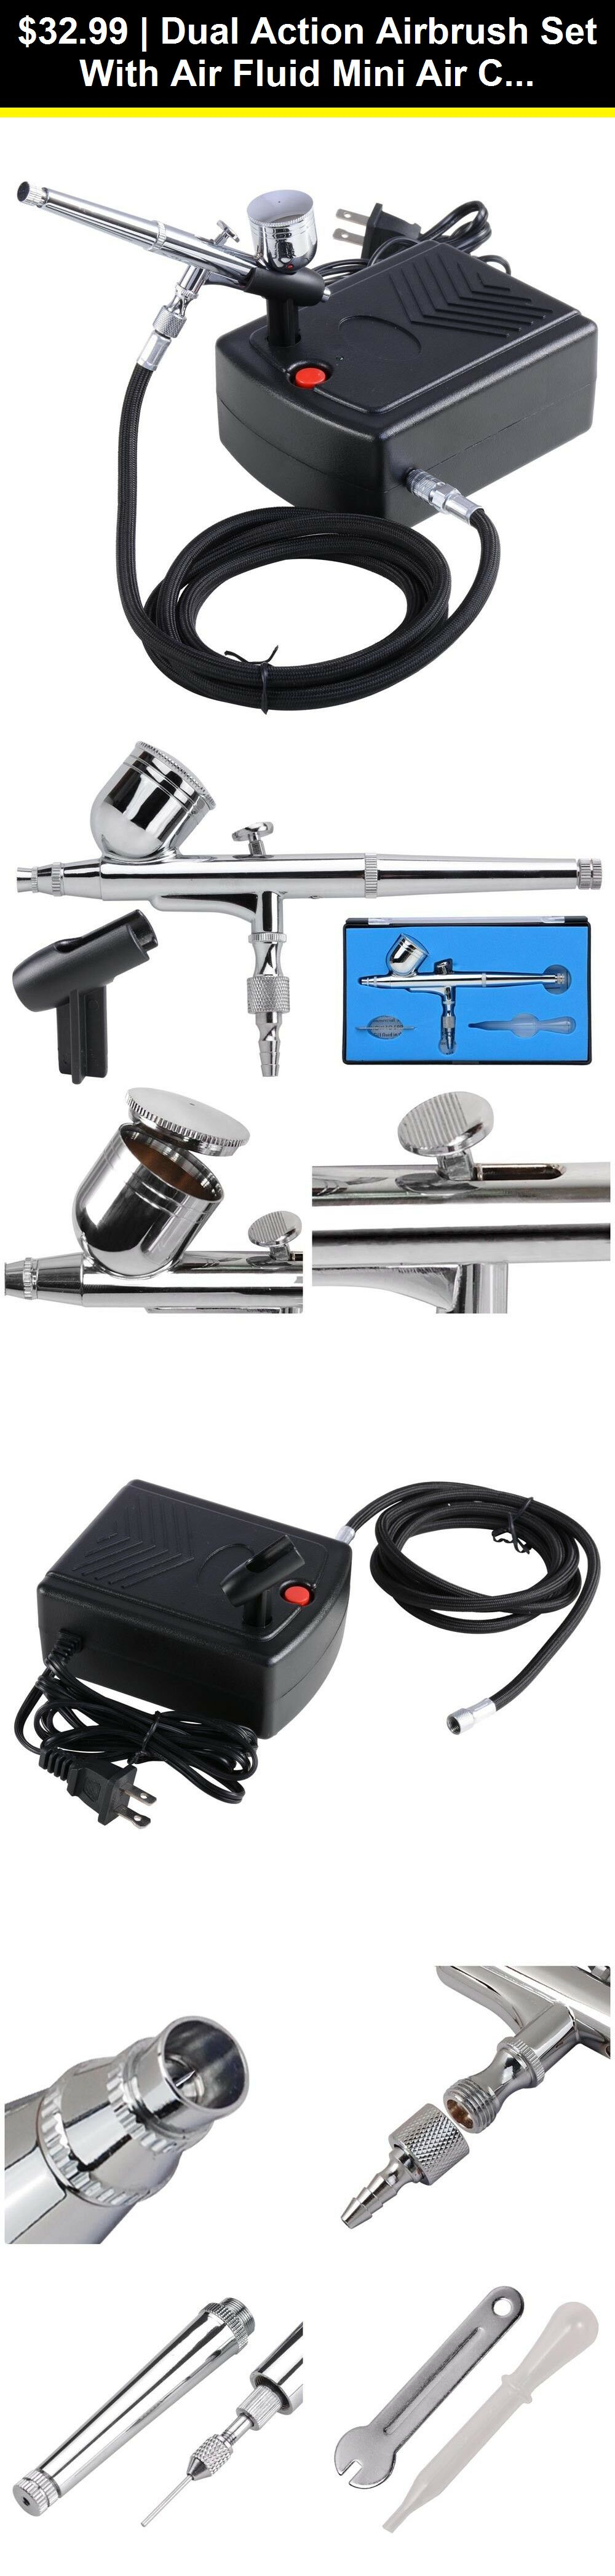 Airbrush Parts 183093 Dual Action Airbrush Set With Air